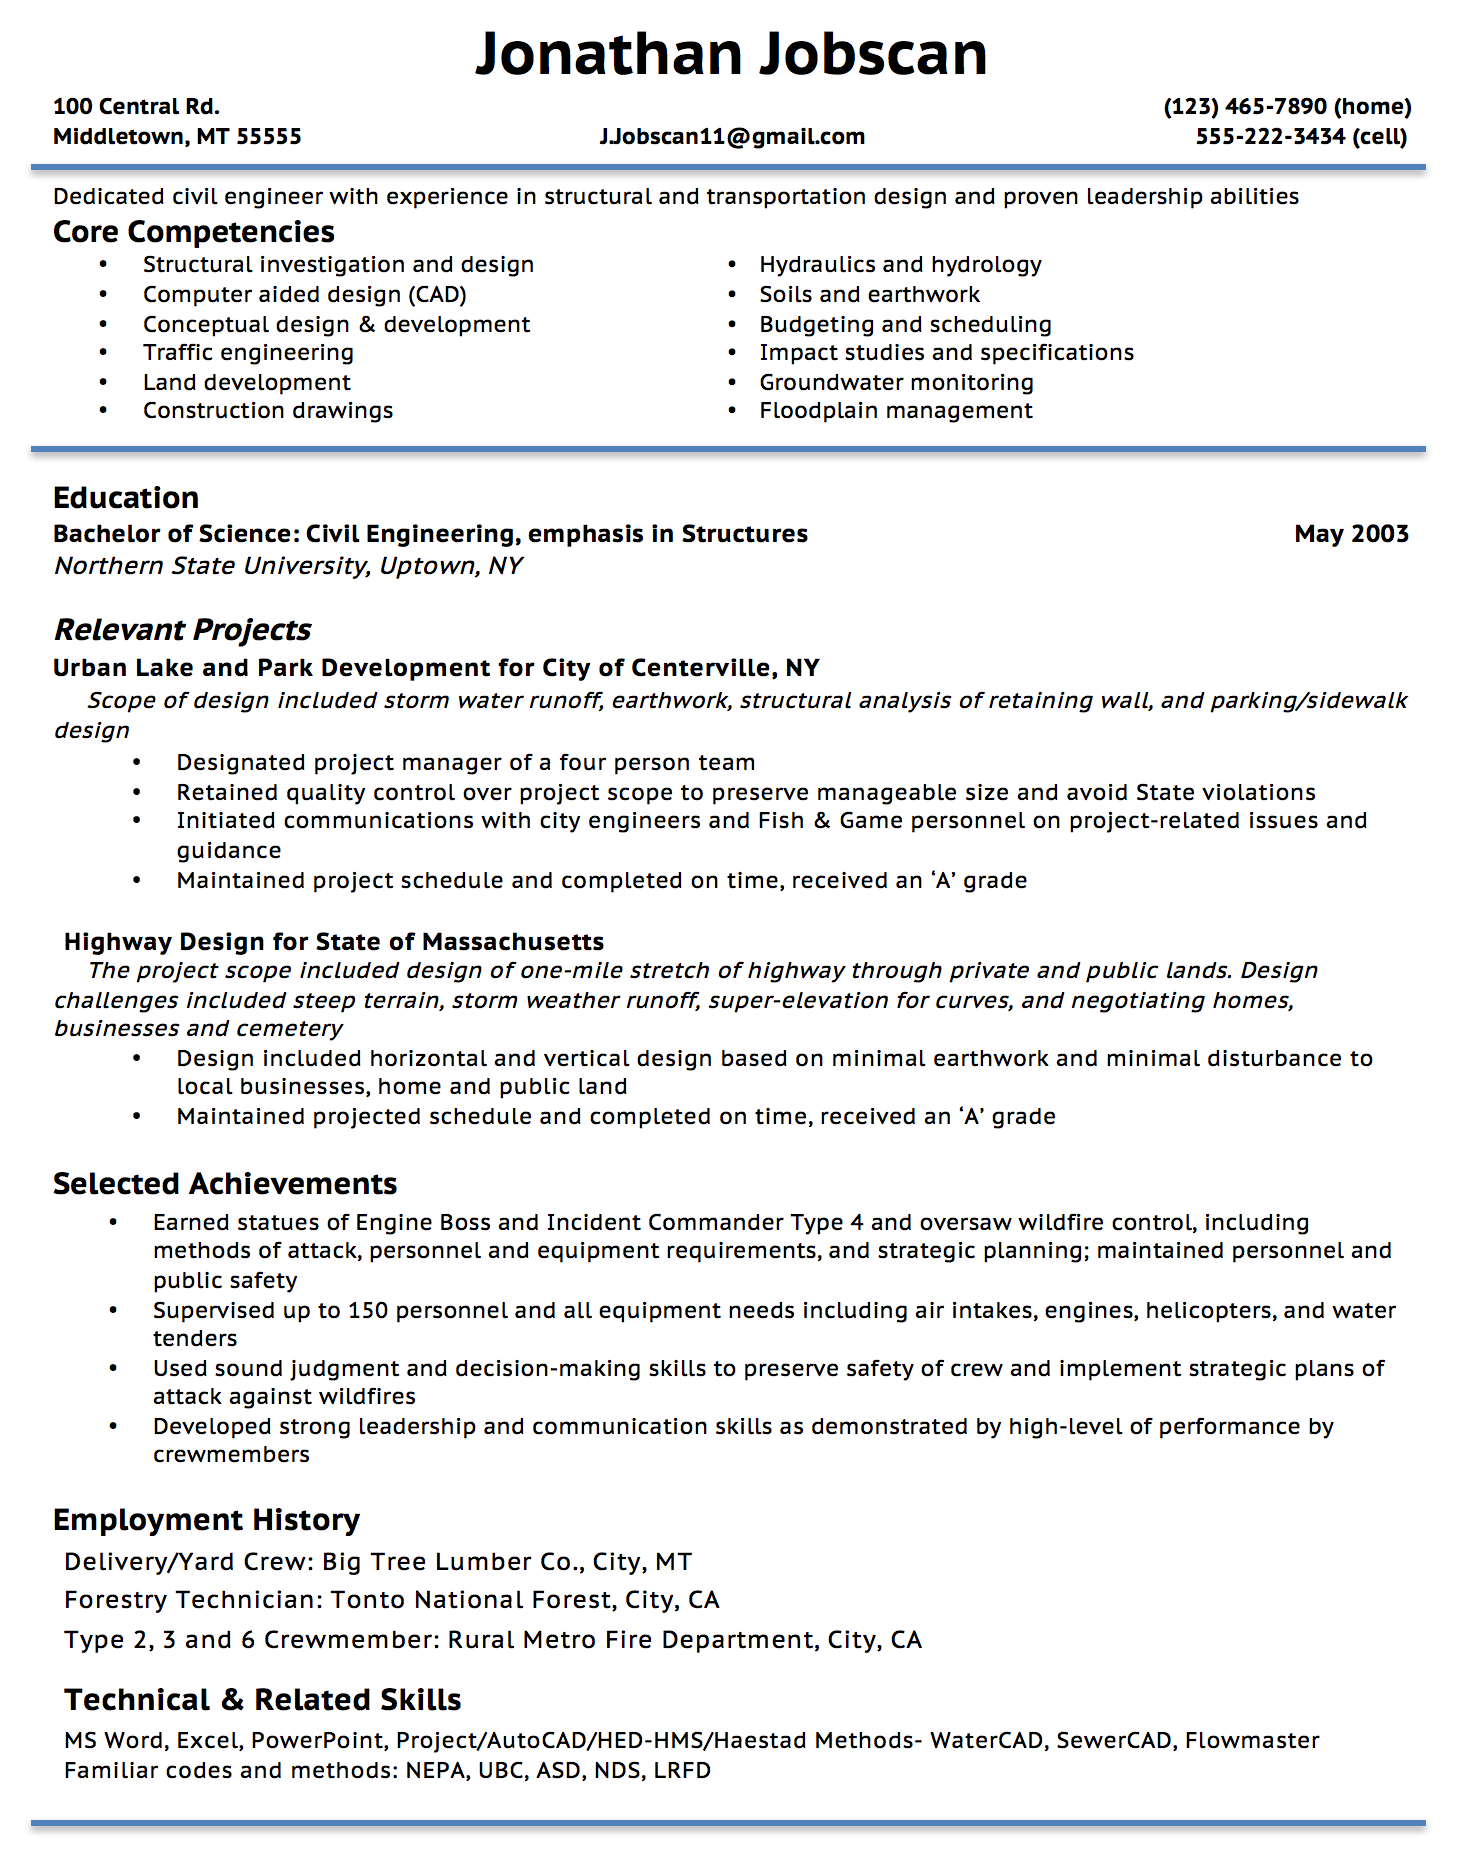 Opposenewapstandardsus  Stunning Resume Writing Guide  Jobscan With Engaging Example Of A Functional Resume Format With Delightful Generic Resume Template Also Example Of Great Resume In Addition Resume Lay Out And First Resume Sample As Well As Good Resume Objective Examples Additionally Listing Computer Skills On Resume From Jobscanco With Opposenewapstandardsus  Engaging Resume Writing Guide  Jobscan With Delightful Example Of A Functional Resume Format And Stunning Generic Resume Template Also Example Of Great Resume In Addition Resume Lay Out From Jobscanco